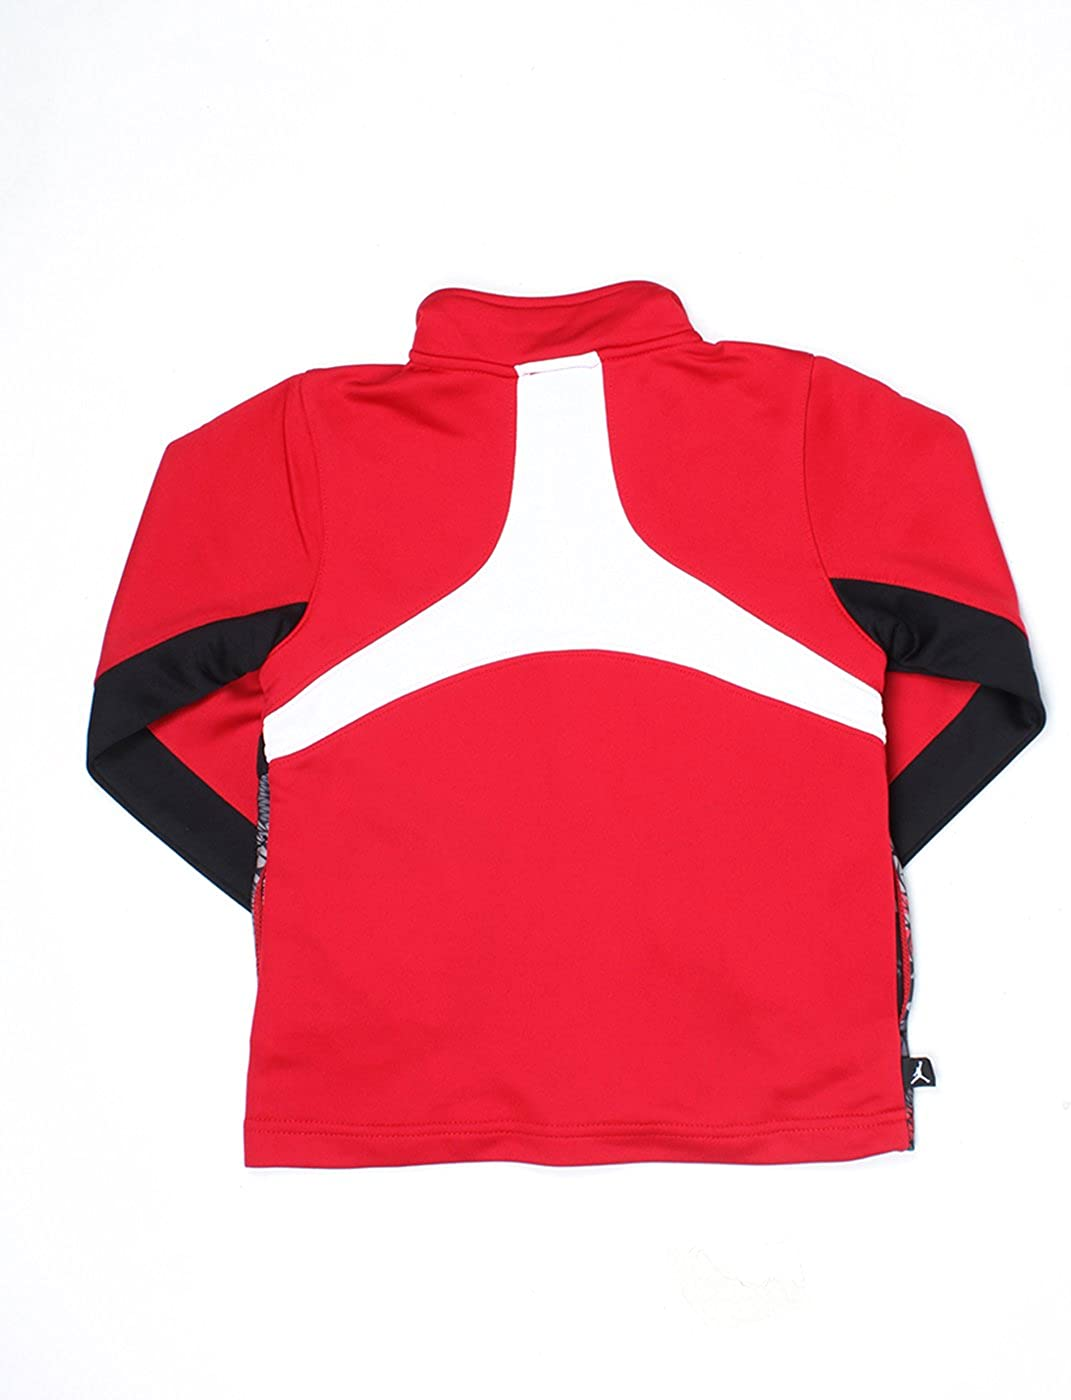 Nike Air Jordan Jumpman Boys Stay Cool Training Dri-Fit Zip Jacket